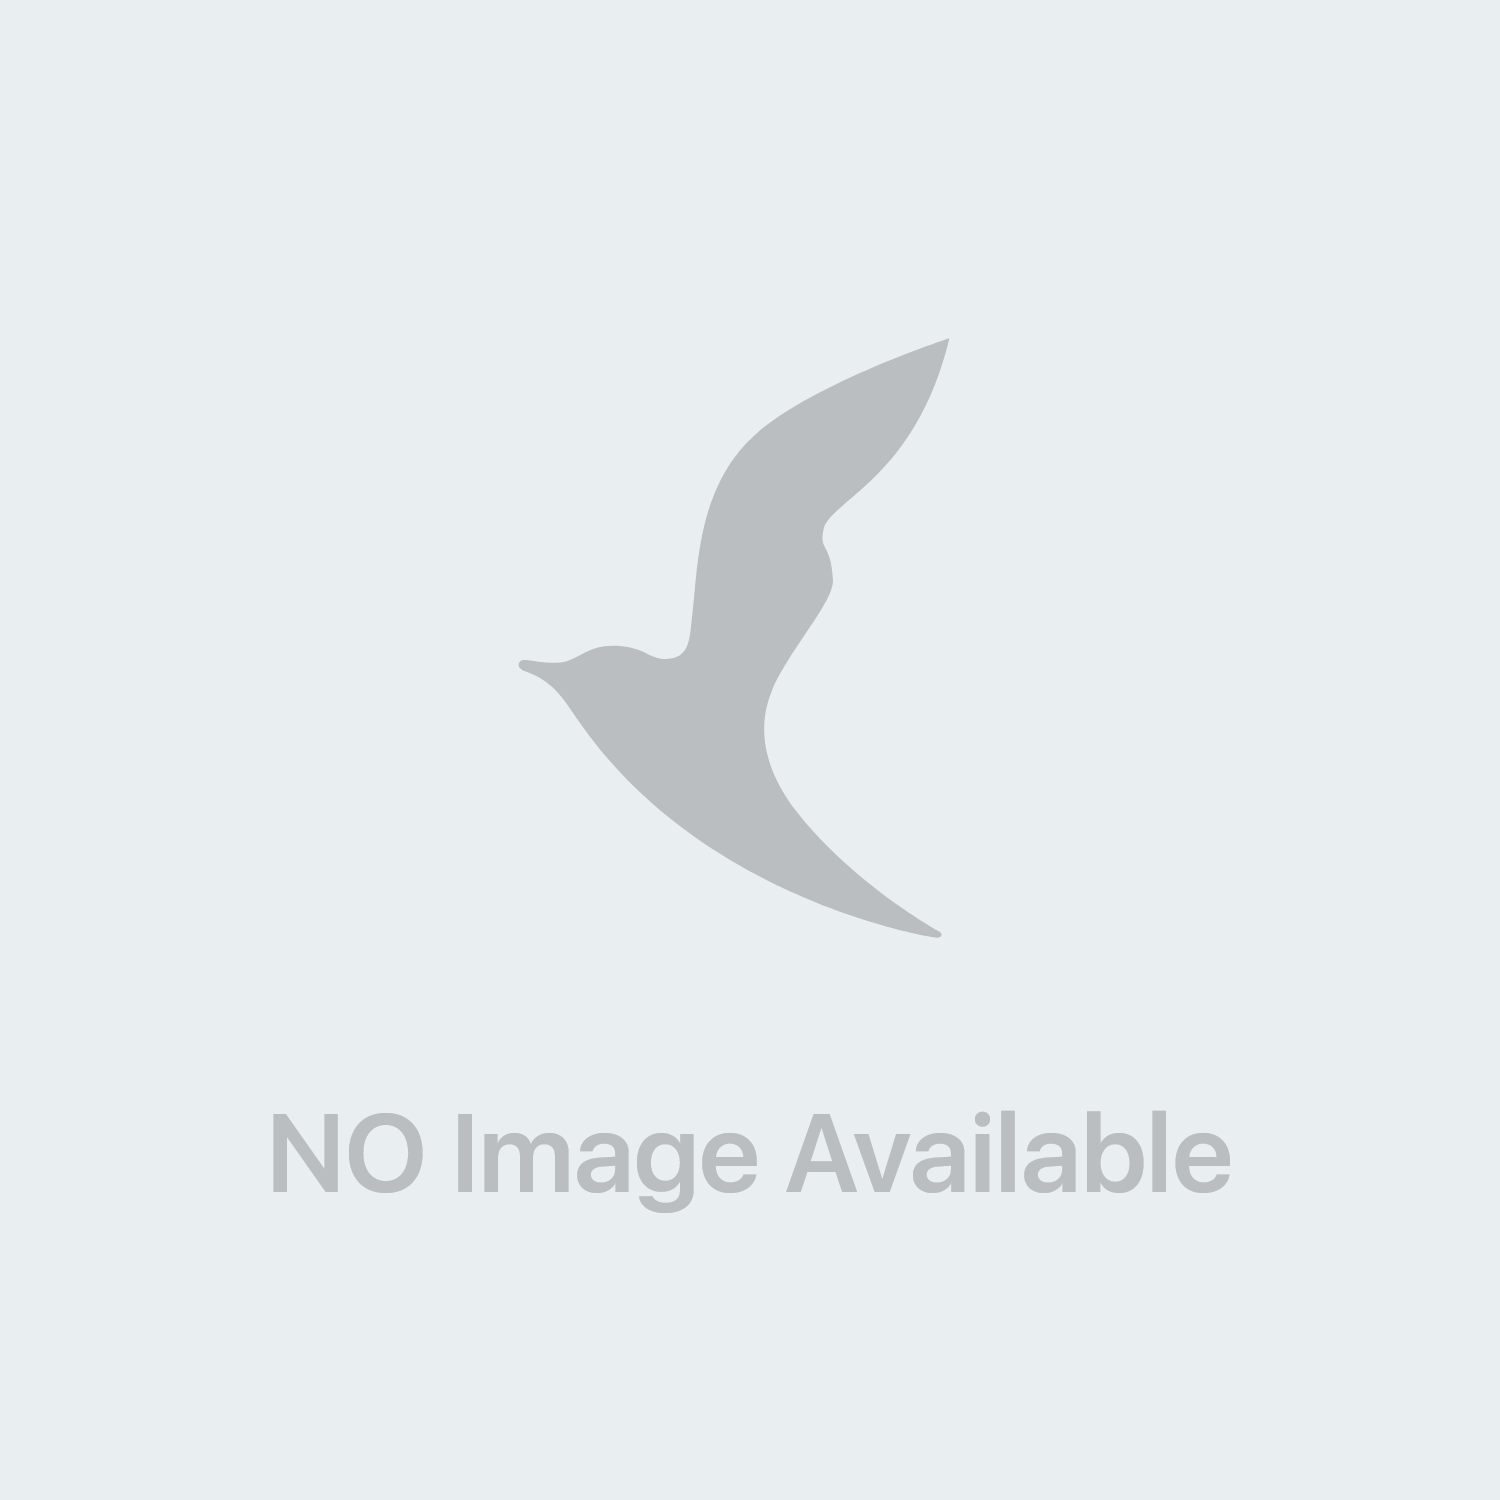 Nevamast 400 mg + 40 mg 30 Compresse